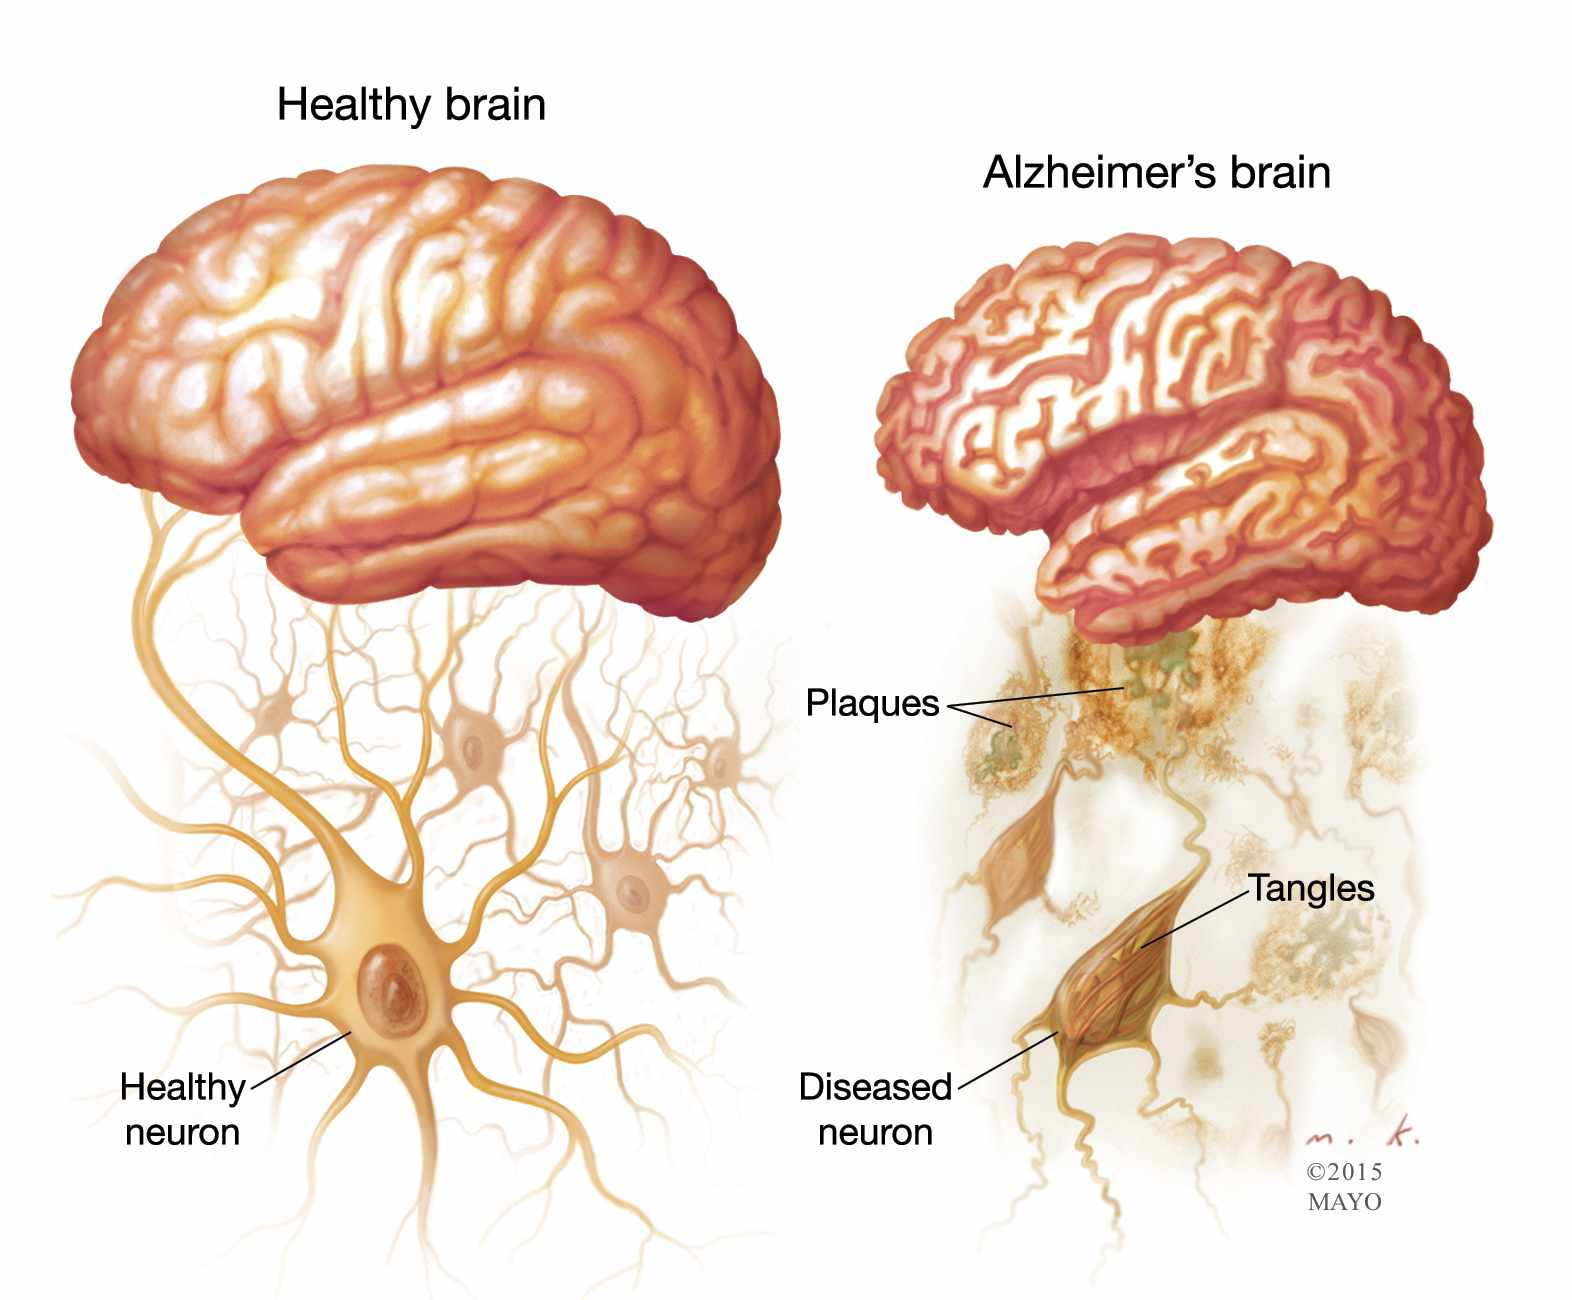 a description of alzheimer a brain disorder Alzheimer's disease is the most common cause of dementia in some countries alzheimer's disease is a brain disease that worsens over time symptoms are usually subtle at first, then become worse.